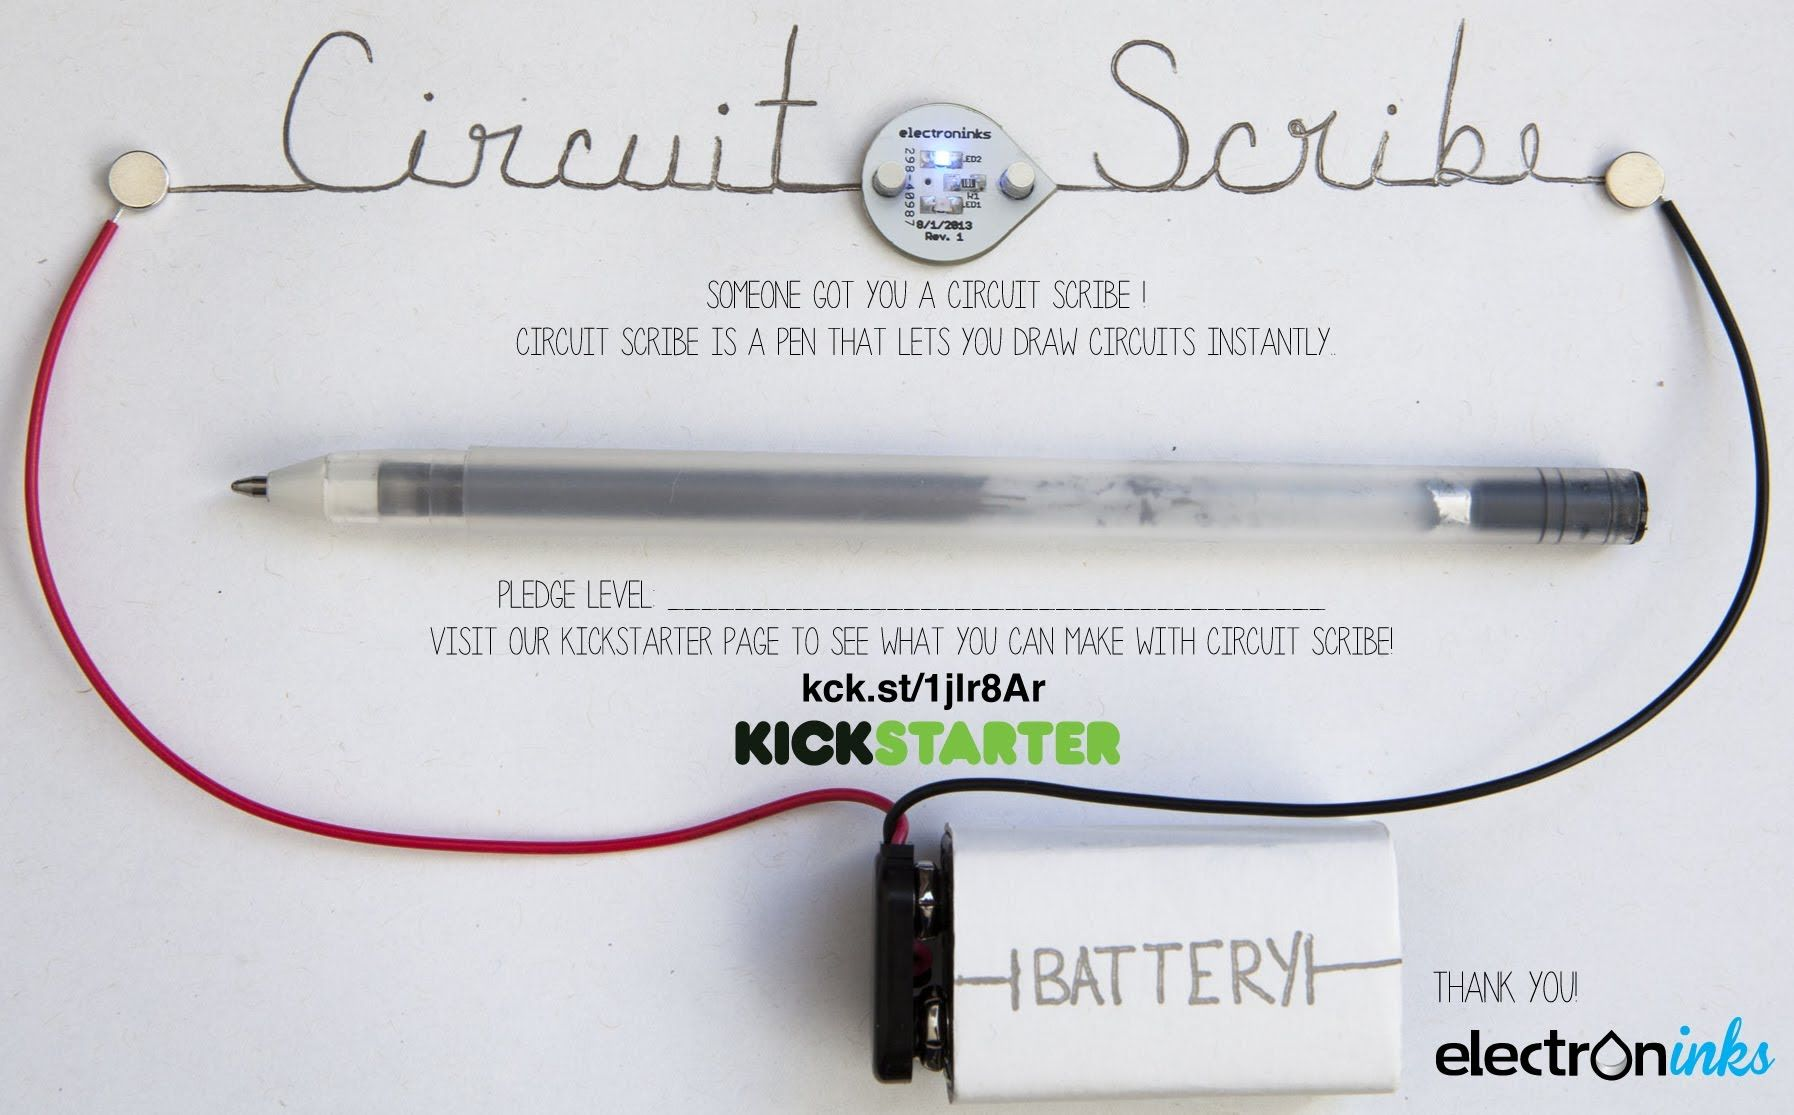 Circuit Scribe Is A Rollerball Pen That Writes With Conductive Want Silver Ink It Makes Creating Circuits As Easy Doodling Help This Project At Kickstarter